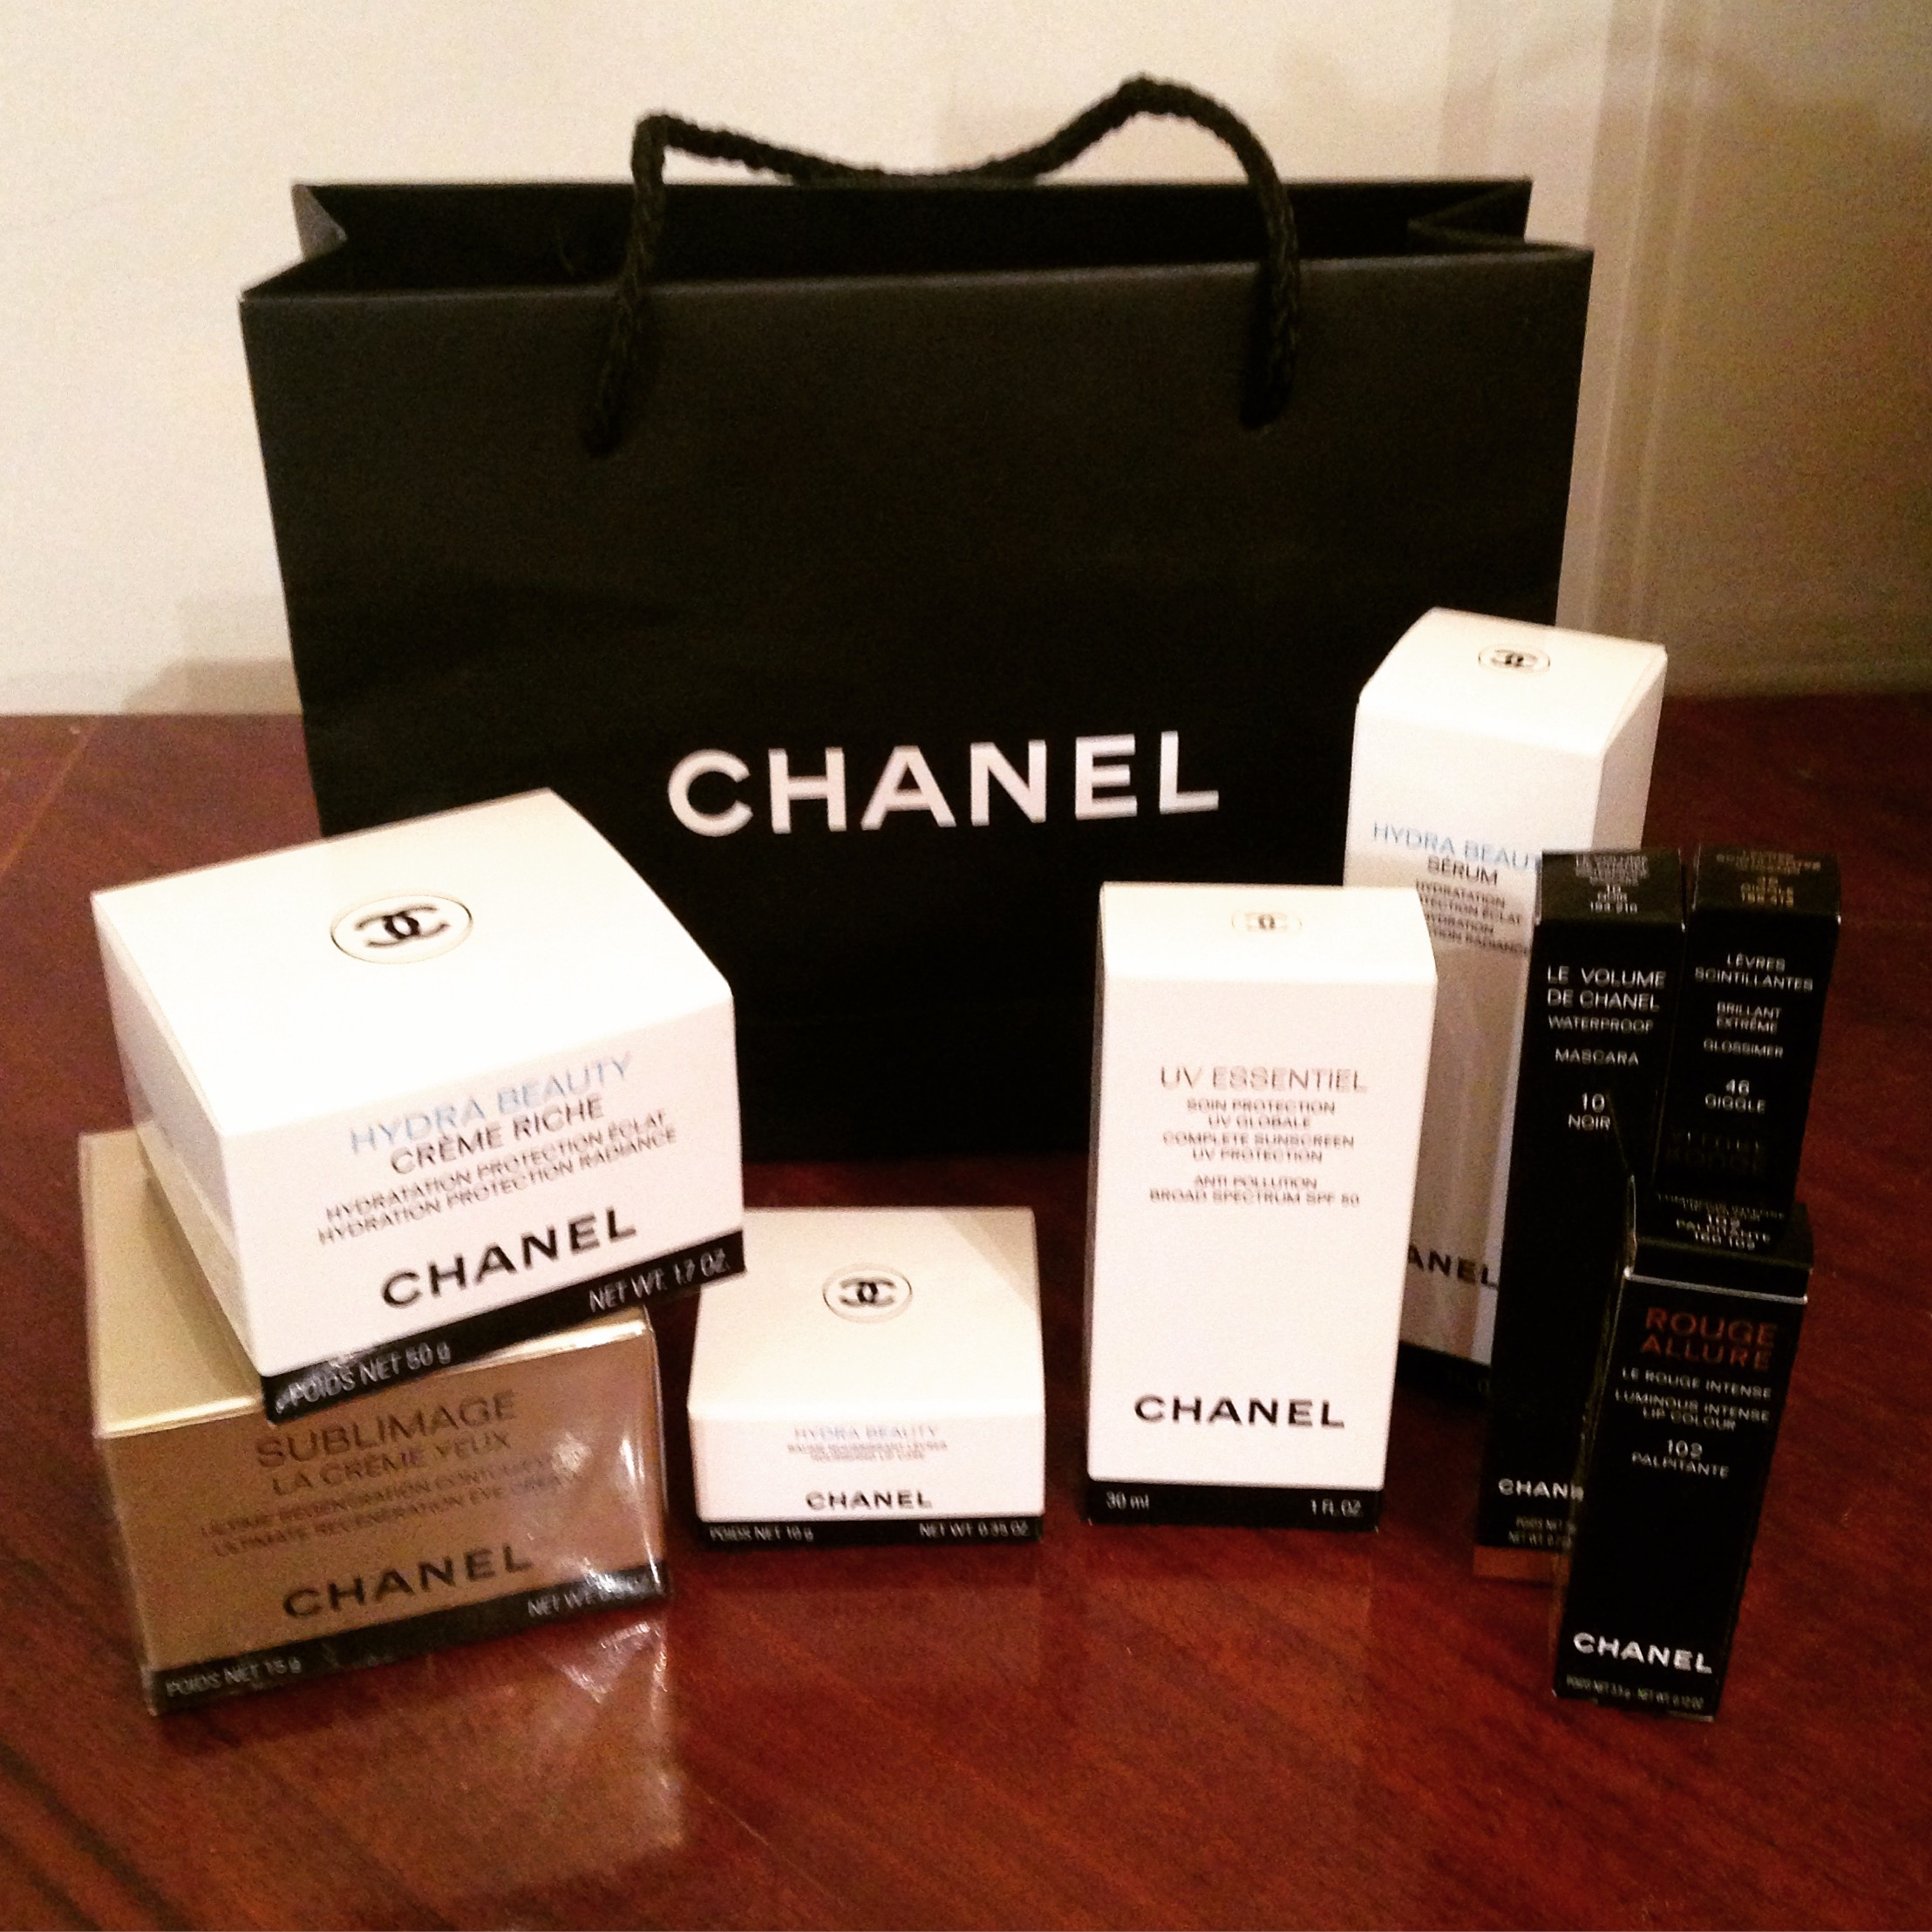 Chanel beauty products from facial surgery patient